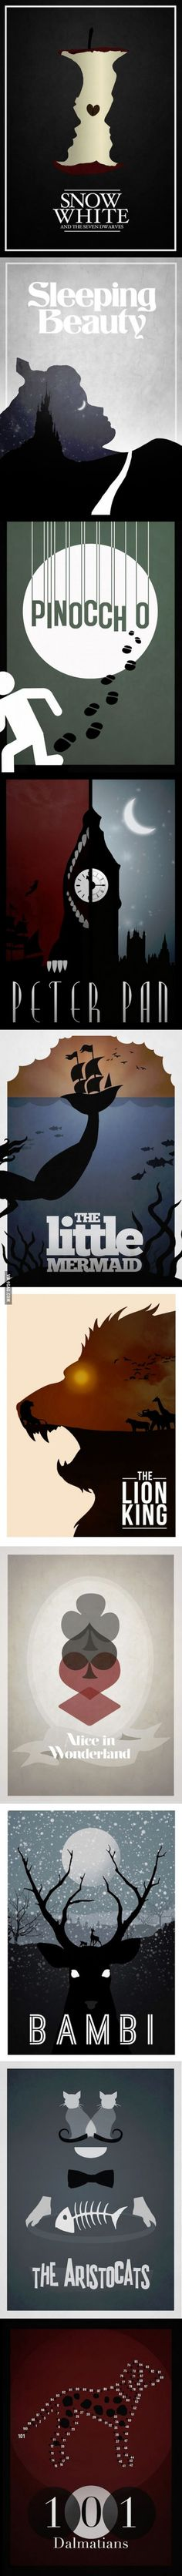 Minimalist Posters Of Disney Films, some of these are very clever.